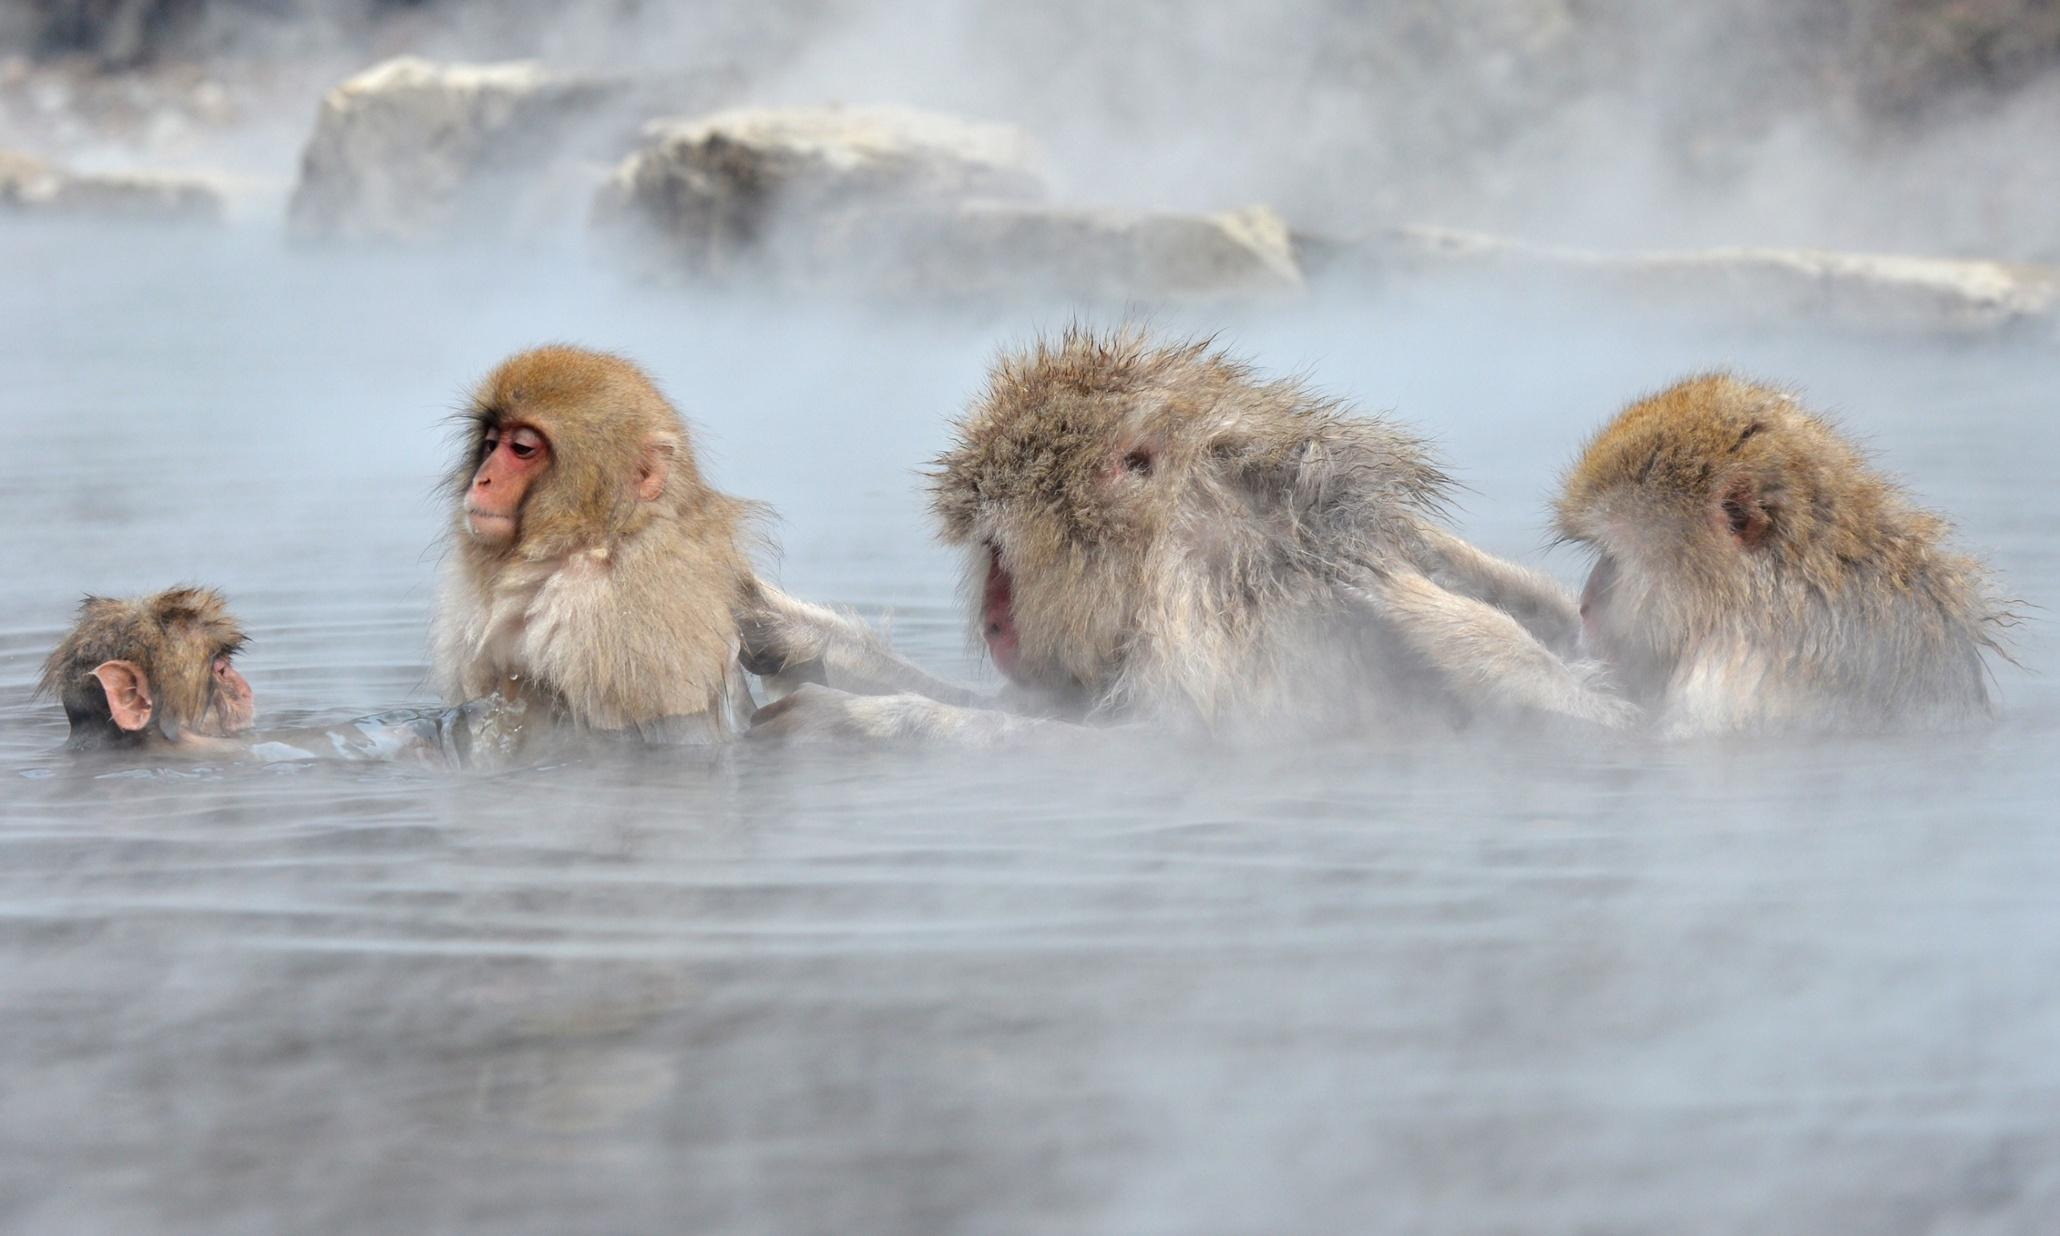 37 Japanese Macaque Wallpapers On Wallpapersafari Images, Photos, Reviews